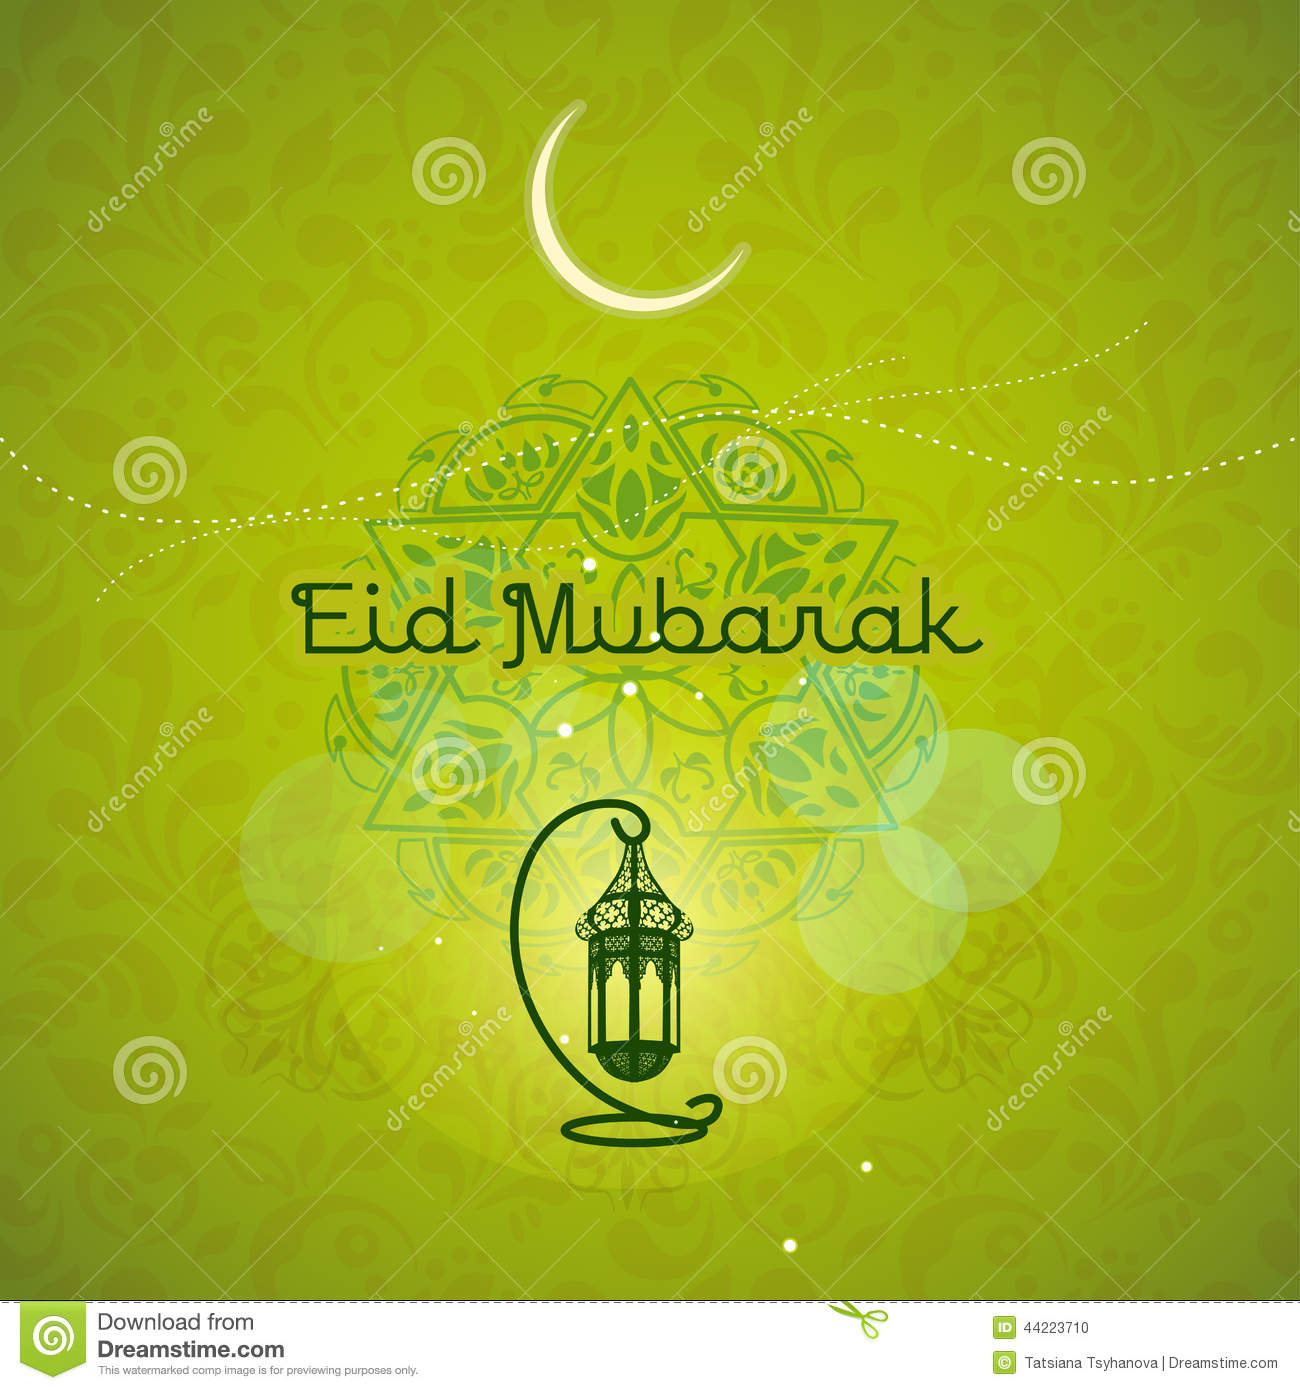 Cool Eid Mubarak Eid Al-Fitr Decorations - eid-ul-fitr-eid-mubarak-greeting-card-arabic-pattern-decorated-light-beige-background-mosque-morning-nature-background-holy-44223710  Gallery_73263 .jpg